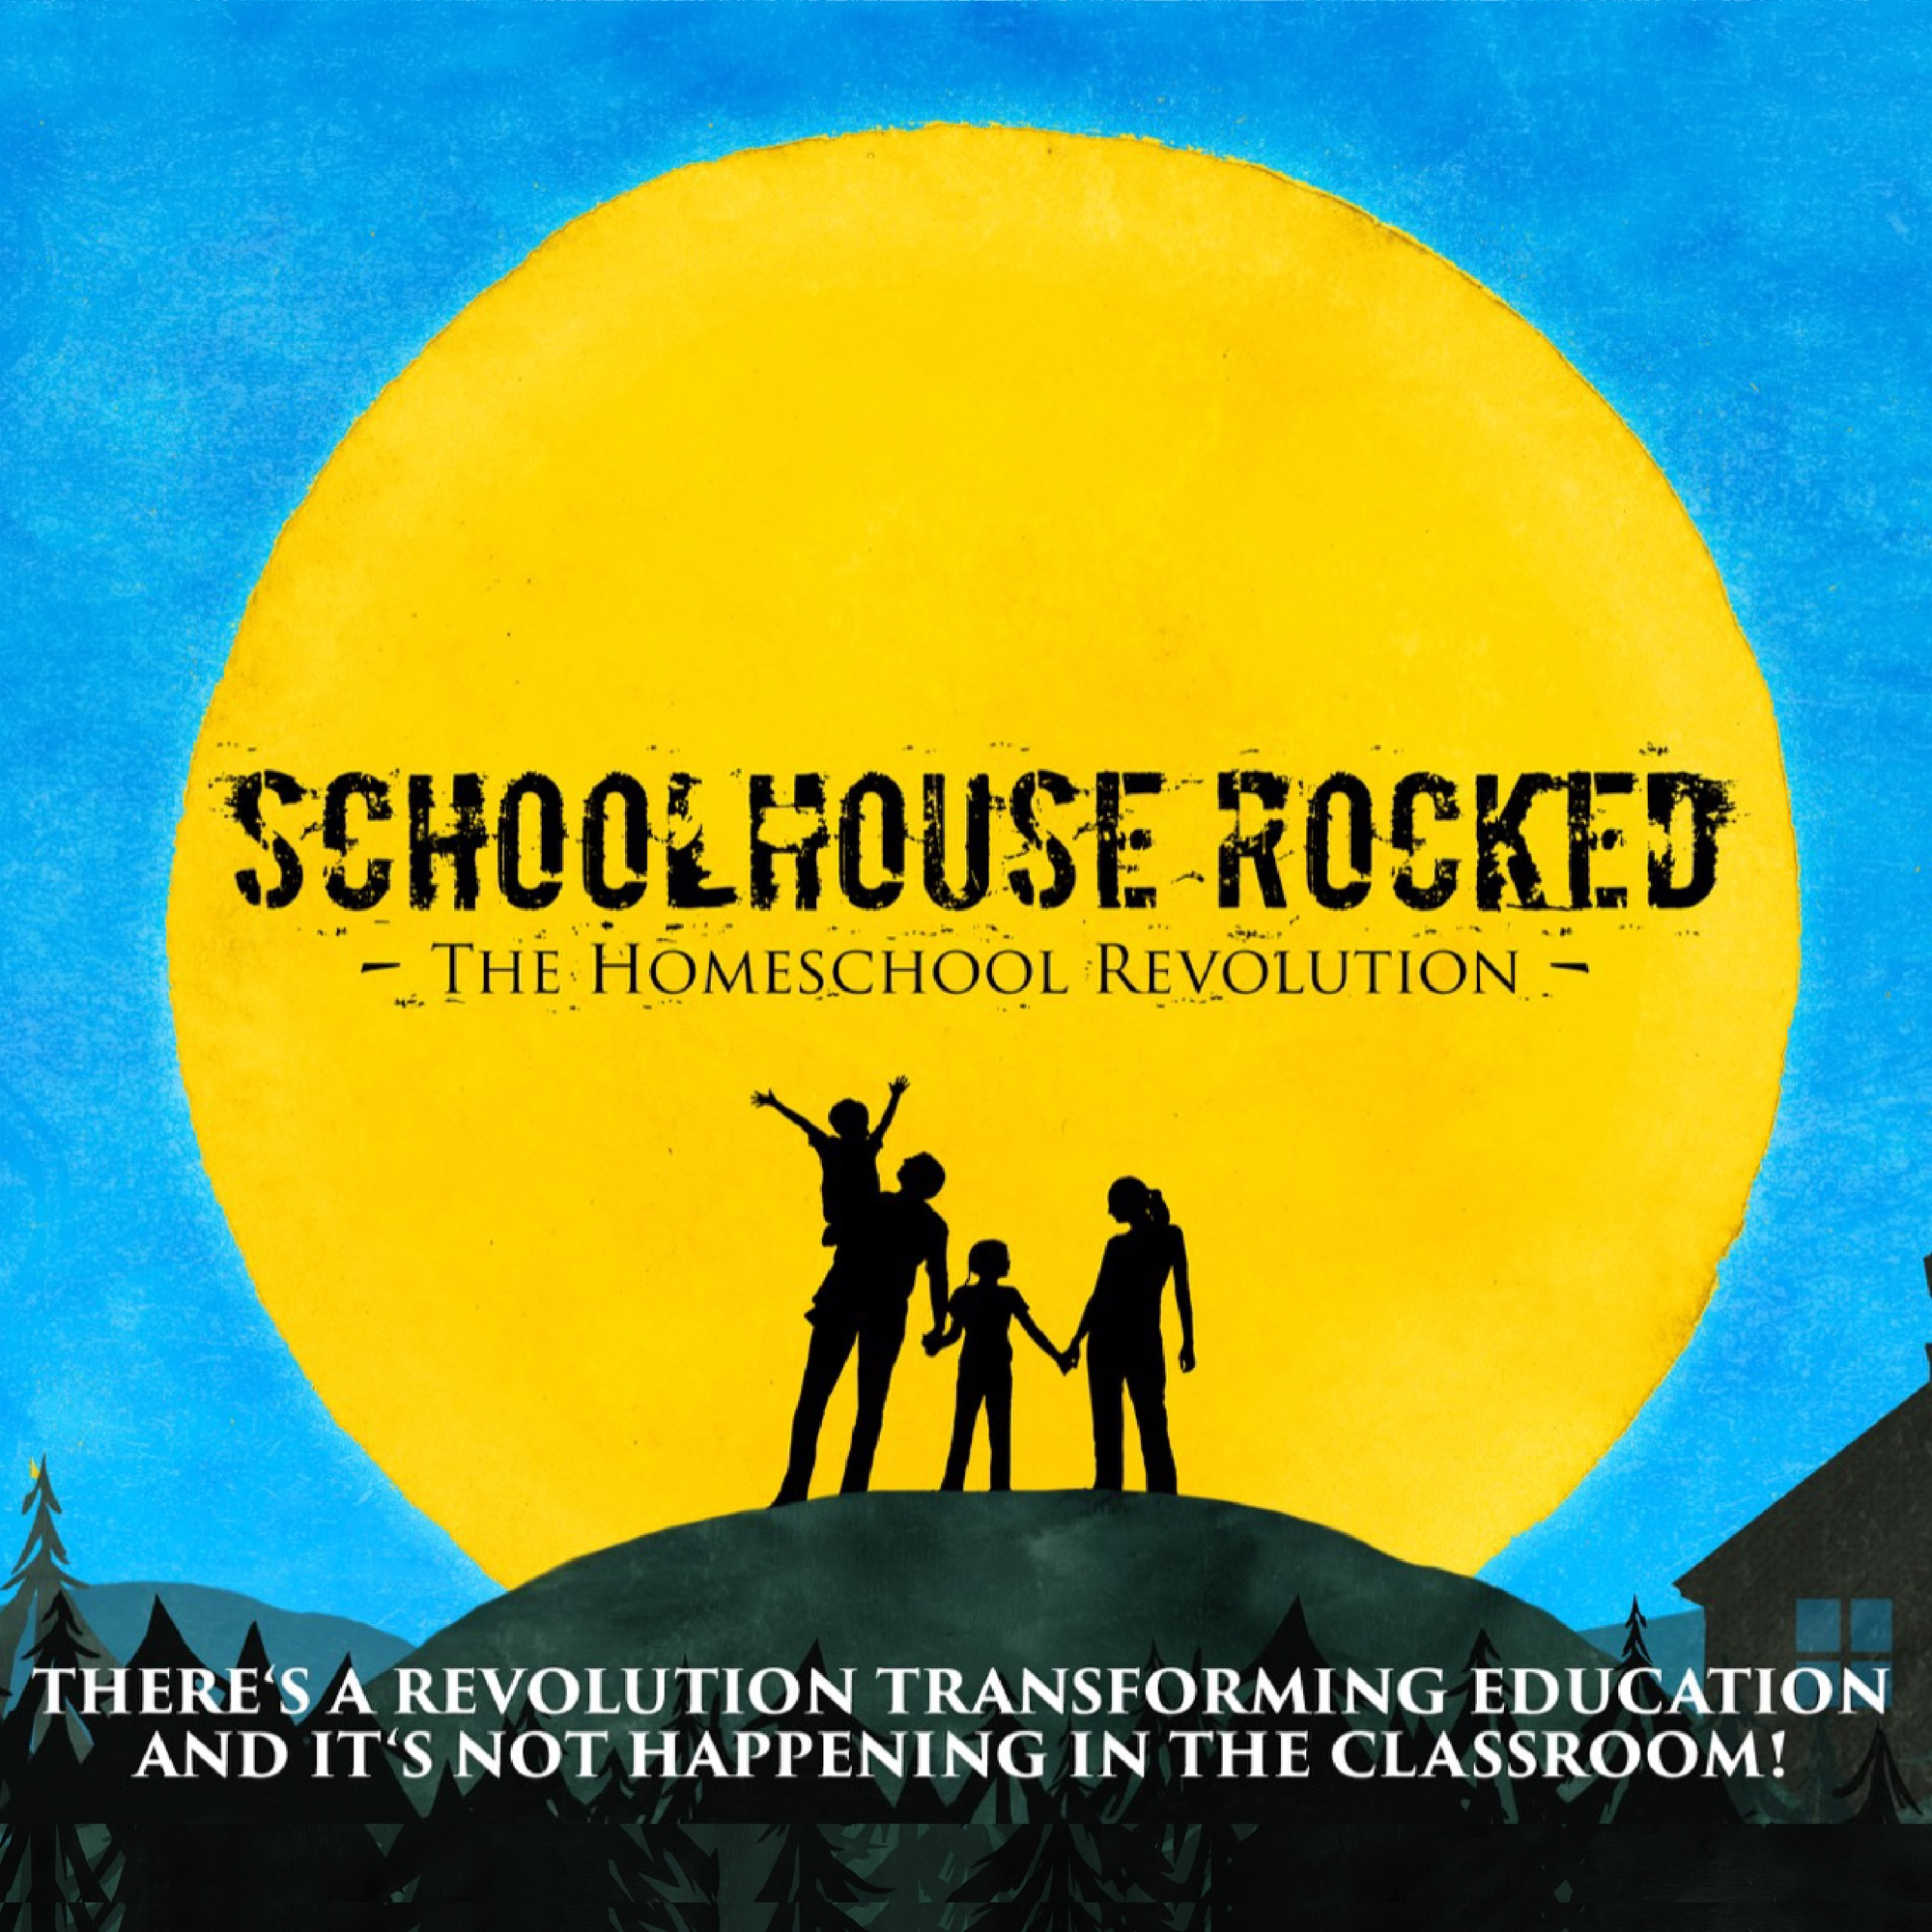 Schoolhouse Rocked: The Homeschool Revolution!